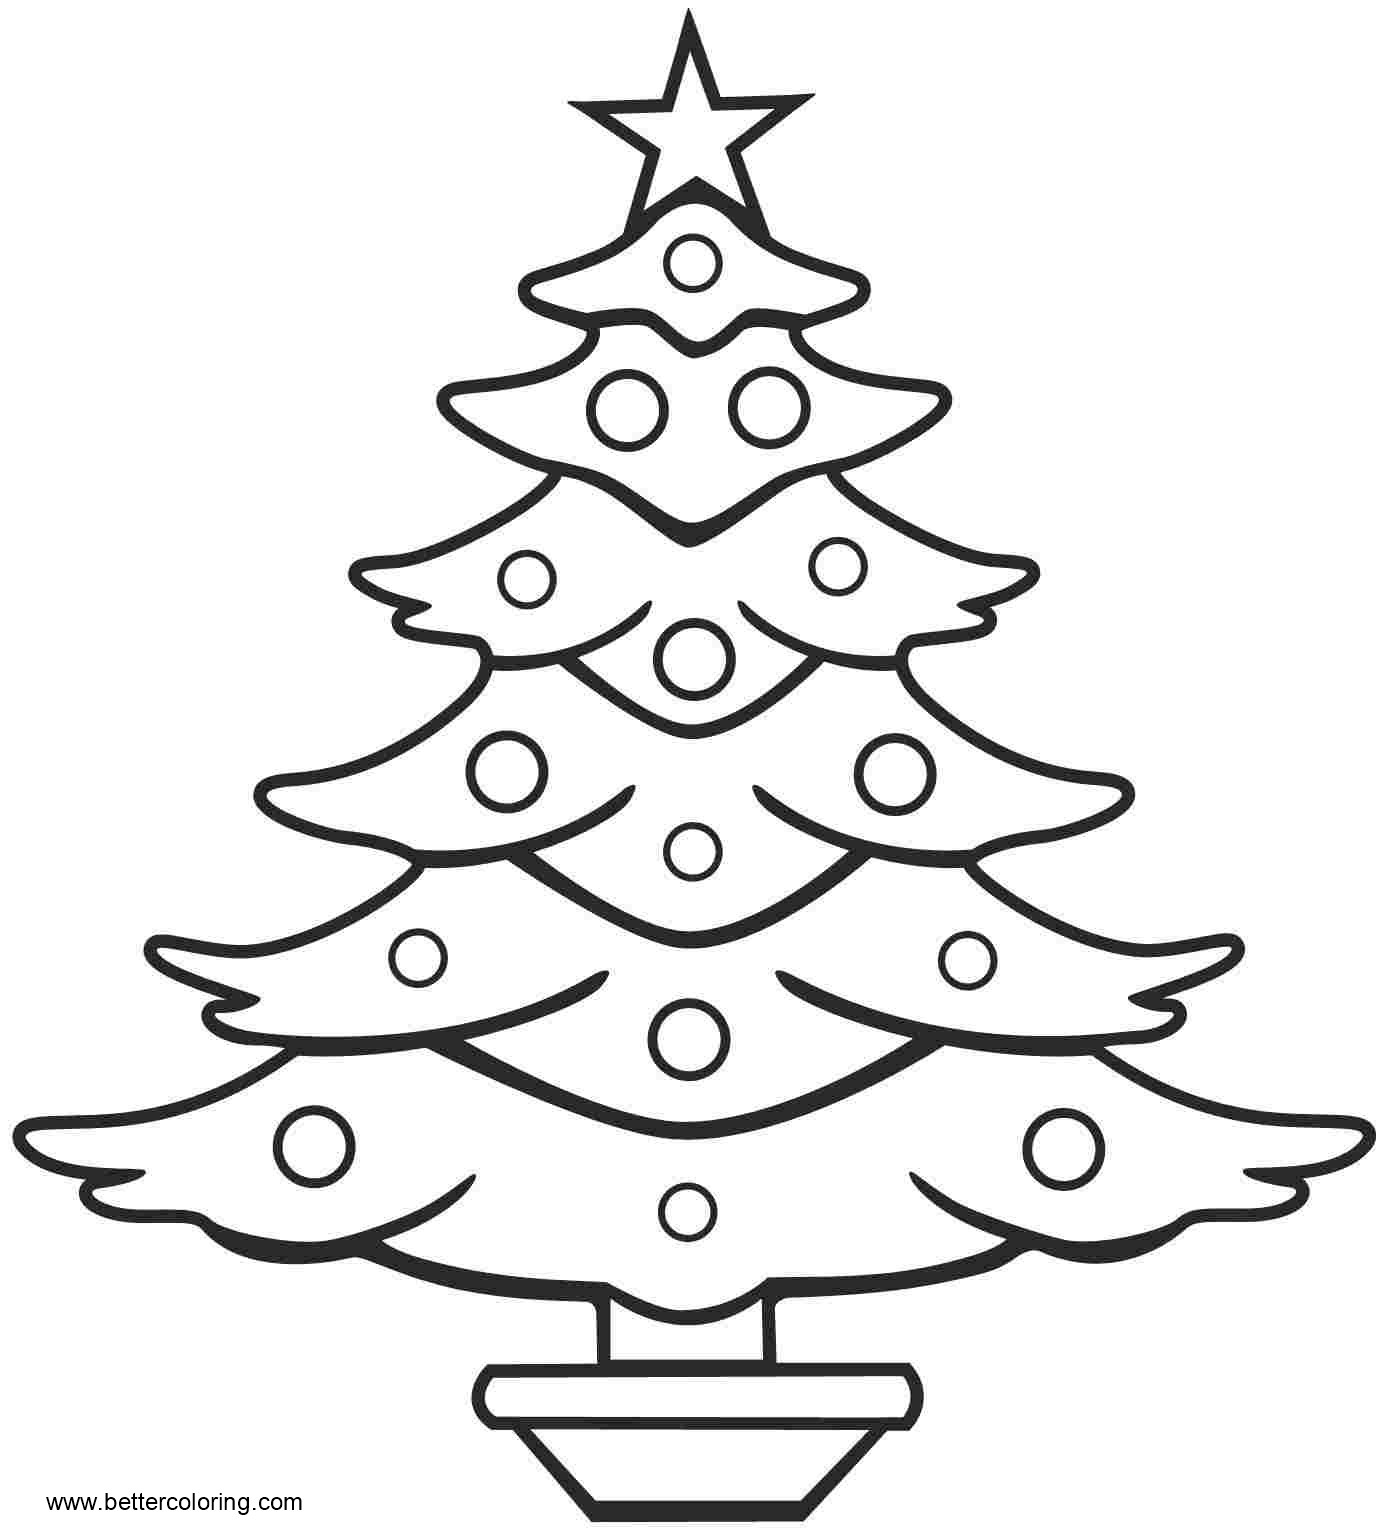 Free Simple Christmas Tree Coloring Pages Line Art printable